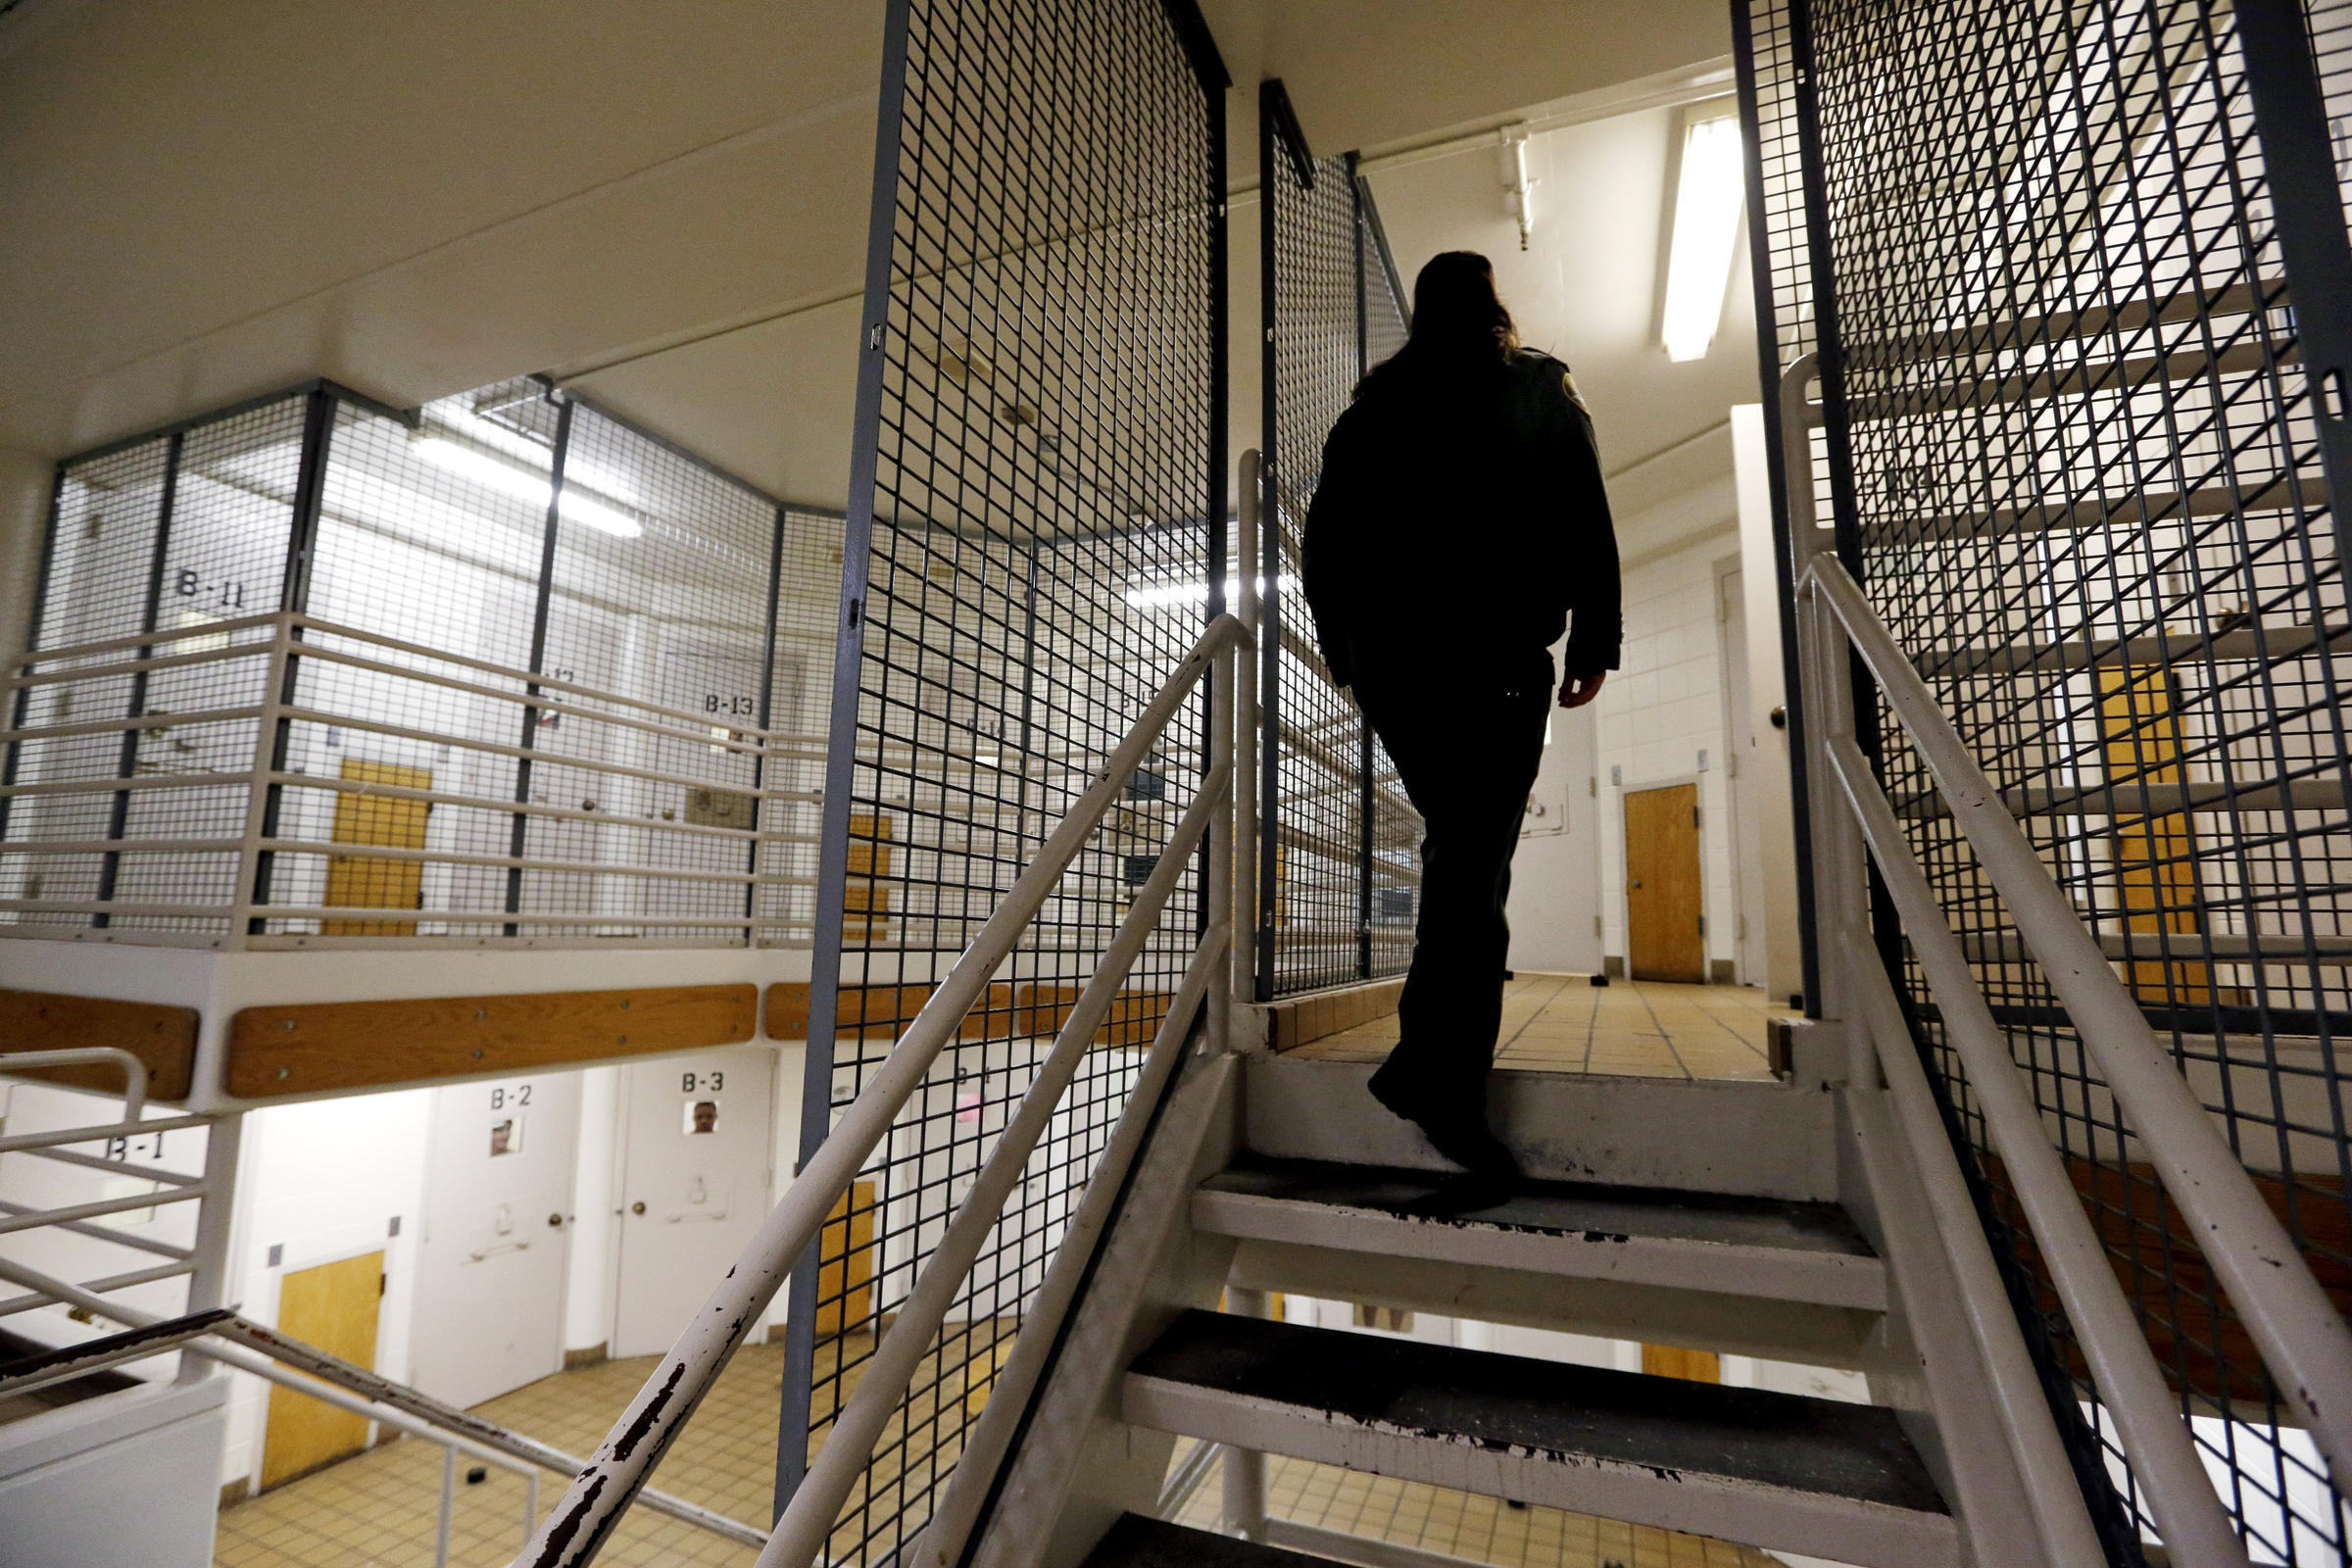 Aclu Sues Pierce County Over Treatment Of Mentally Ill Inmates Knkx